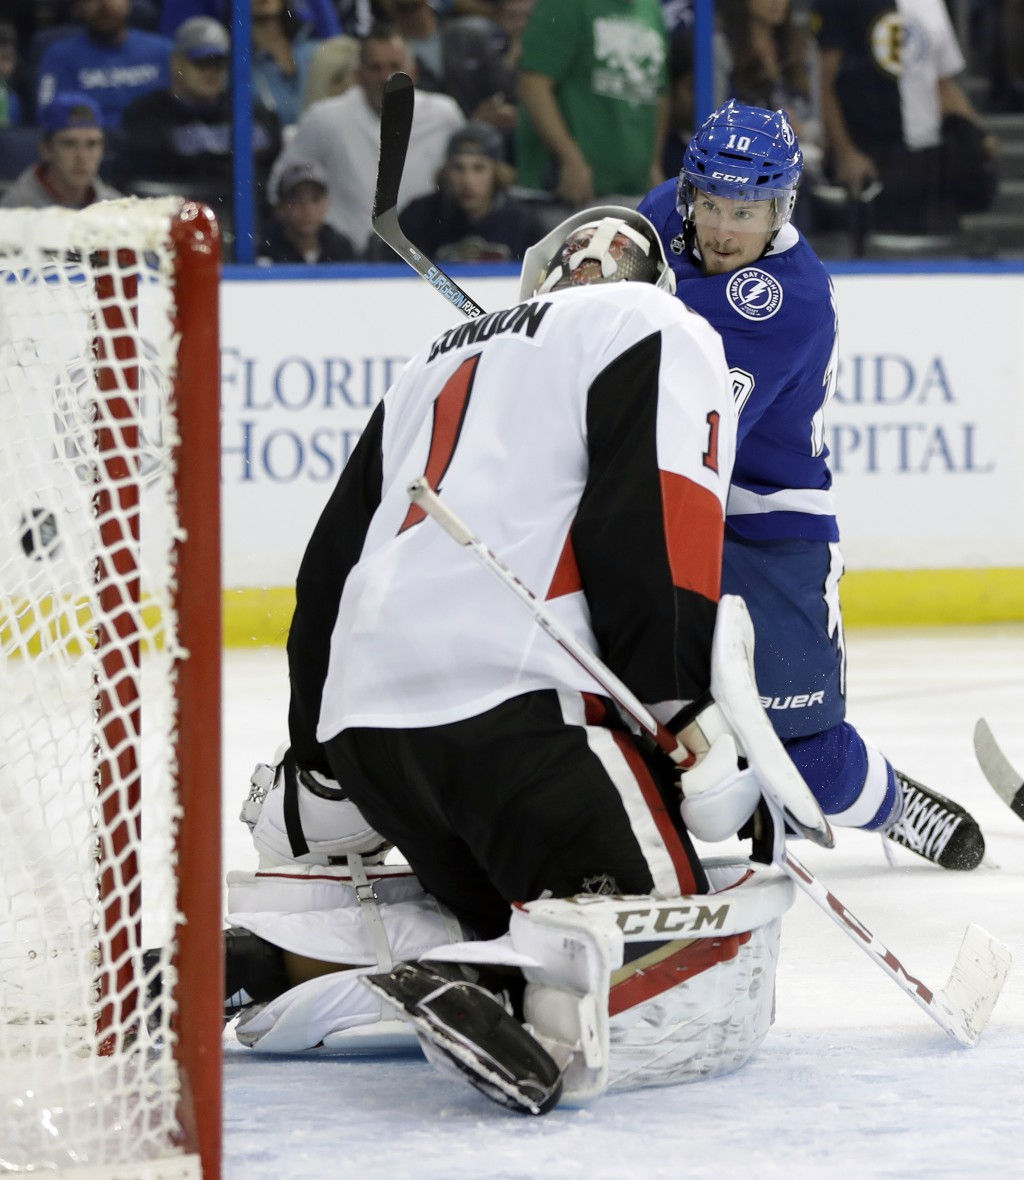 Tampa Bay Lightning center J.T. Miller (10) fires the puck past Ottawa Senators goaltender Mike Condon (1) for a goal during the second period of an N